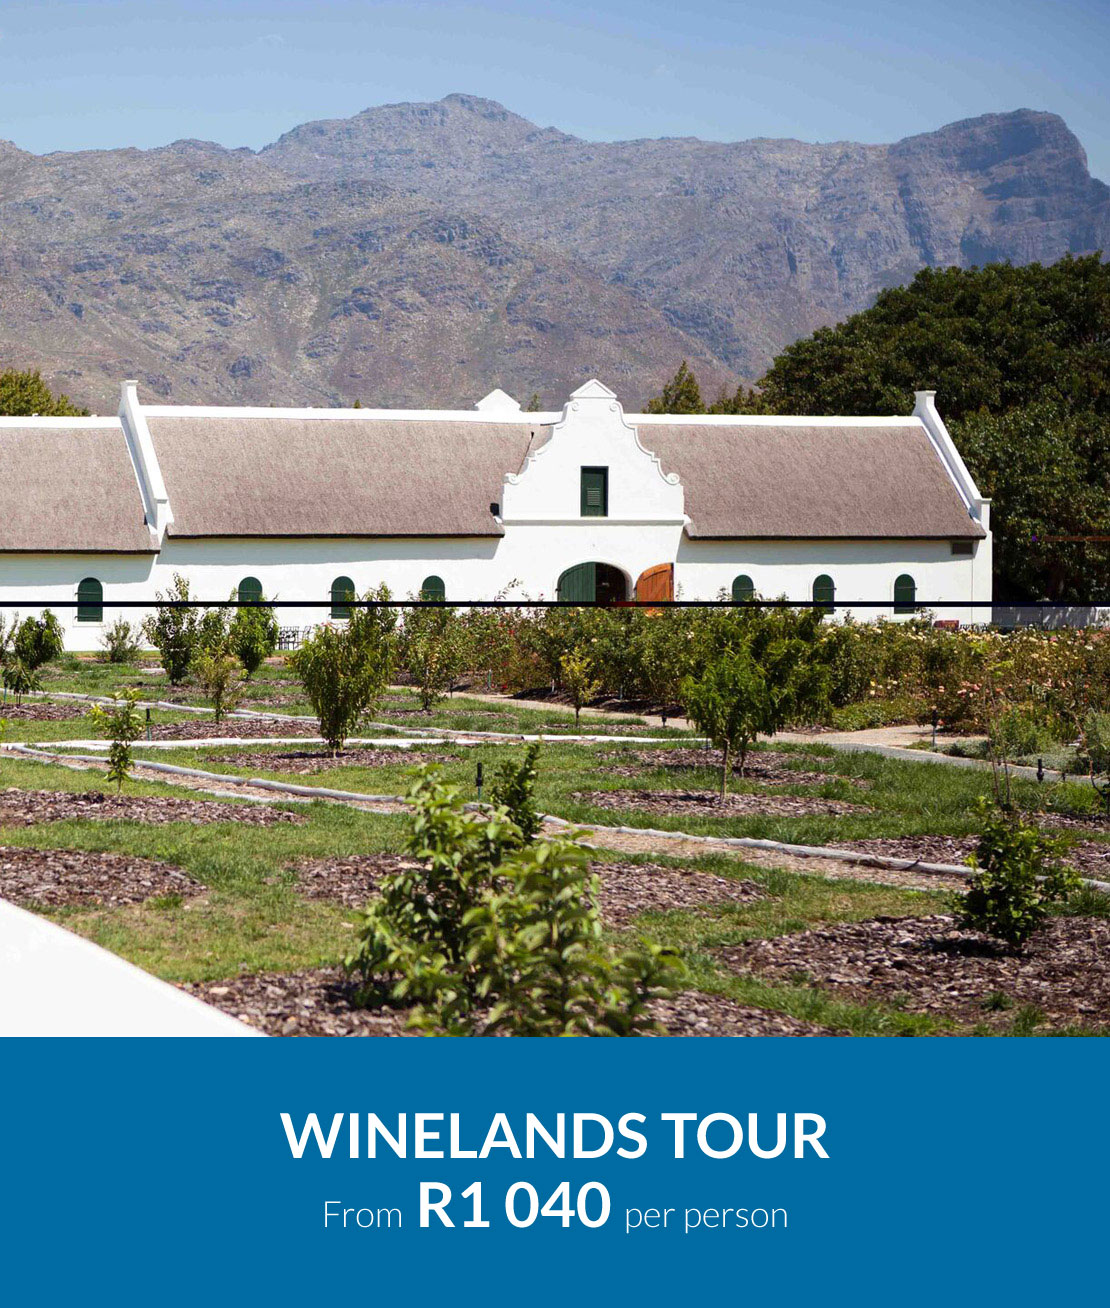 mouille-point-village-winelands-tour